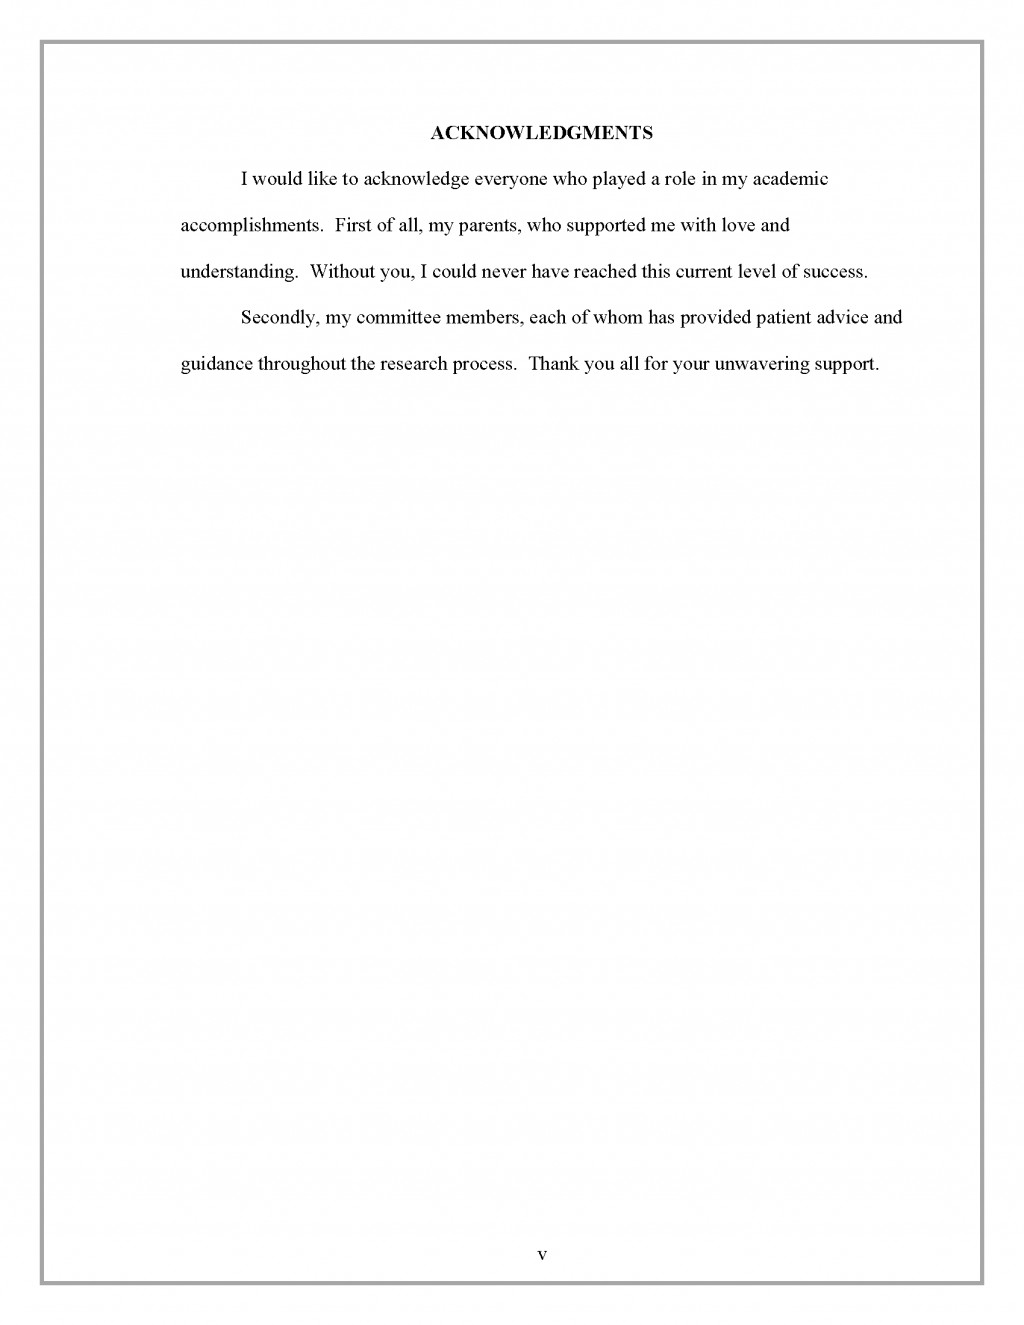 002 Acknowledgement Example For Research Paper Acknowledgment Border Rare Pdf Large